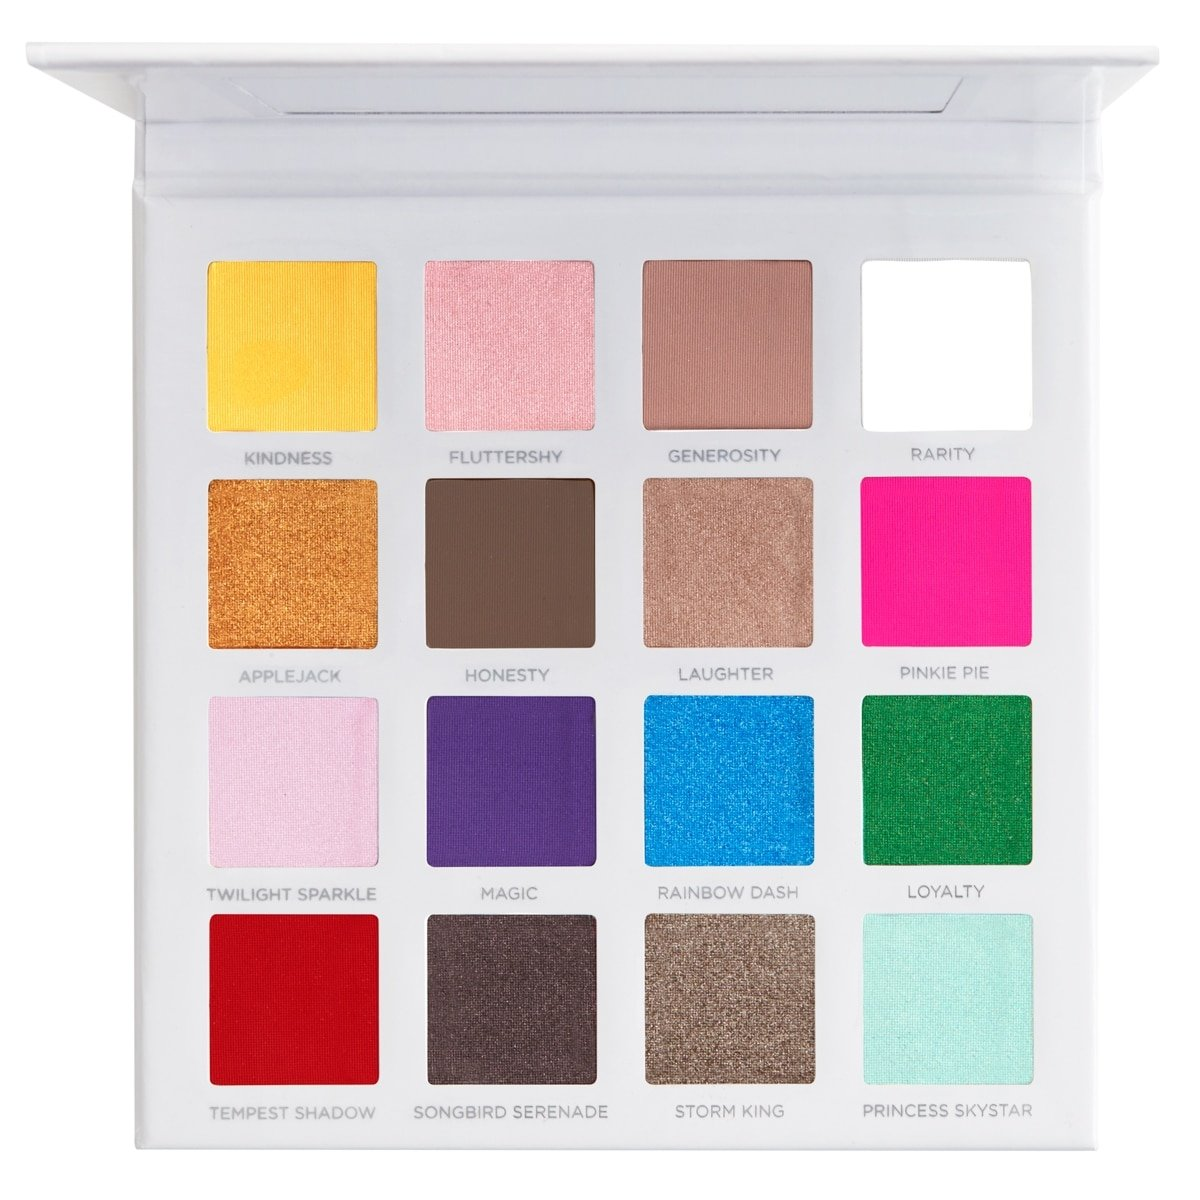 Pur Store View - My Little Pony: The Movie Collection Eyeshadow Palette